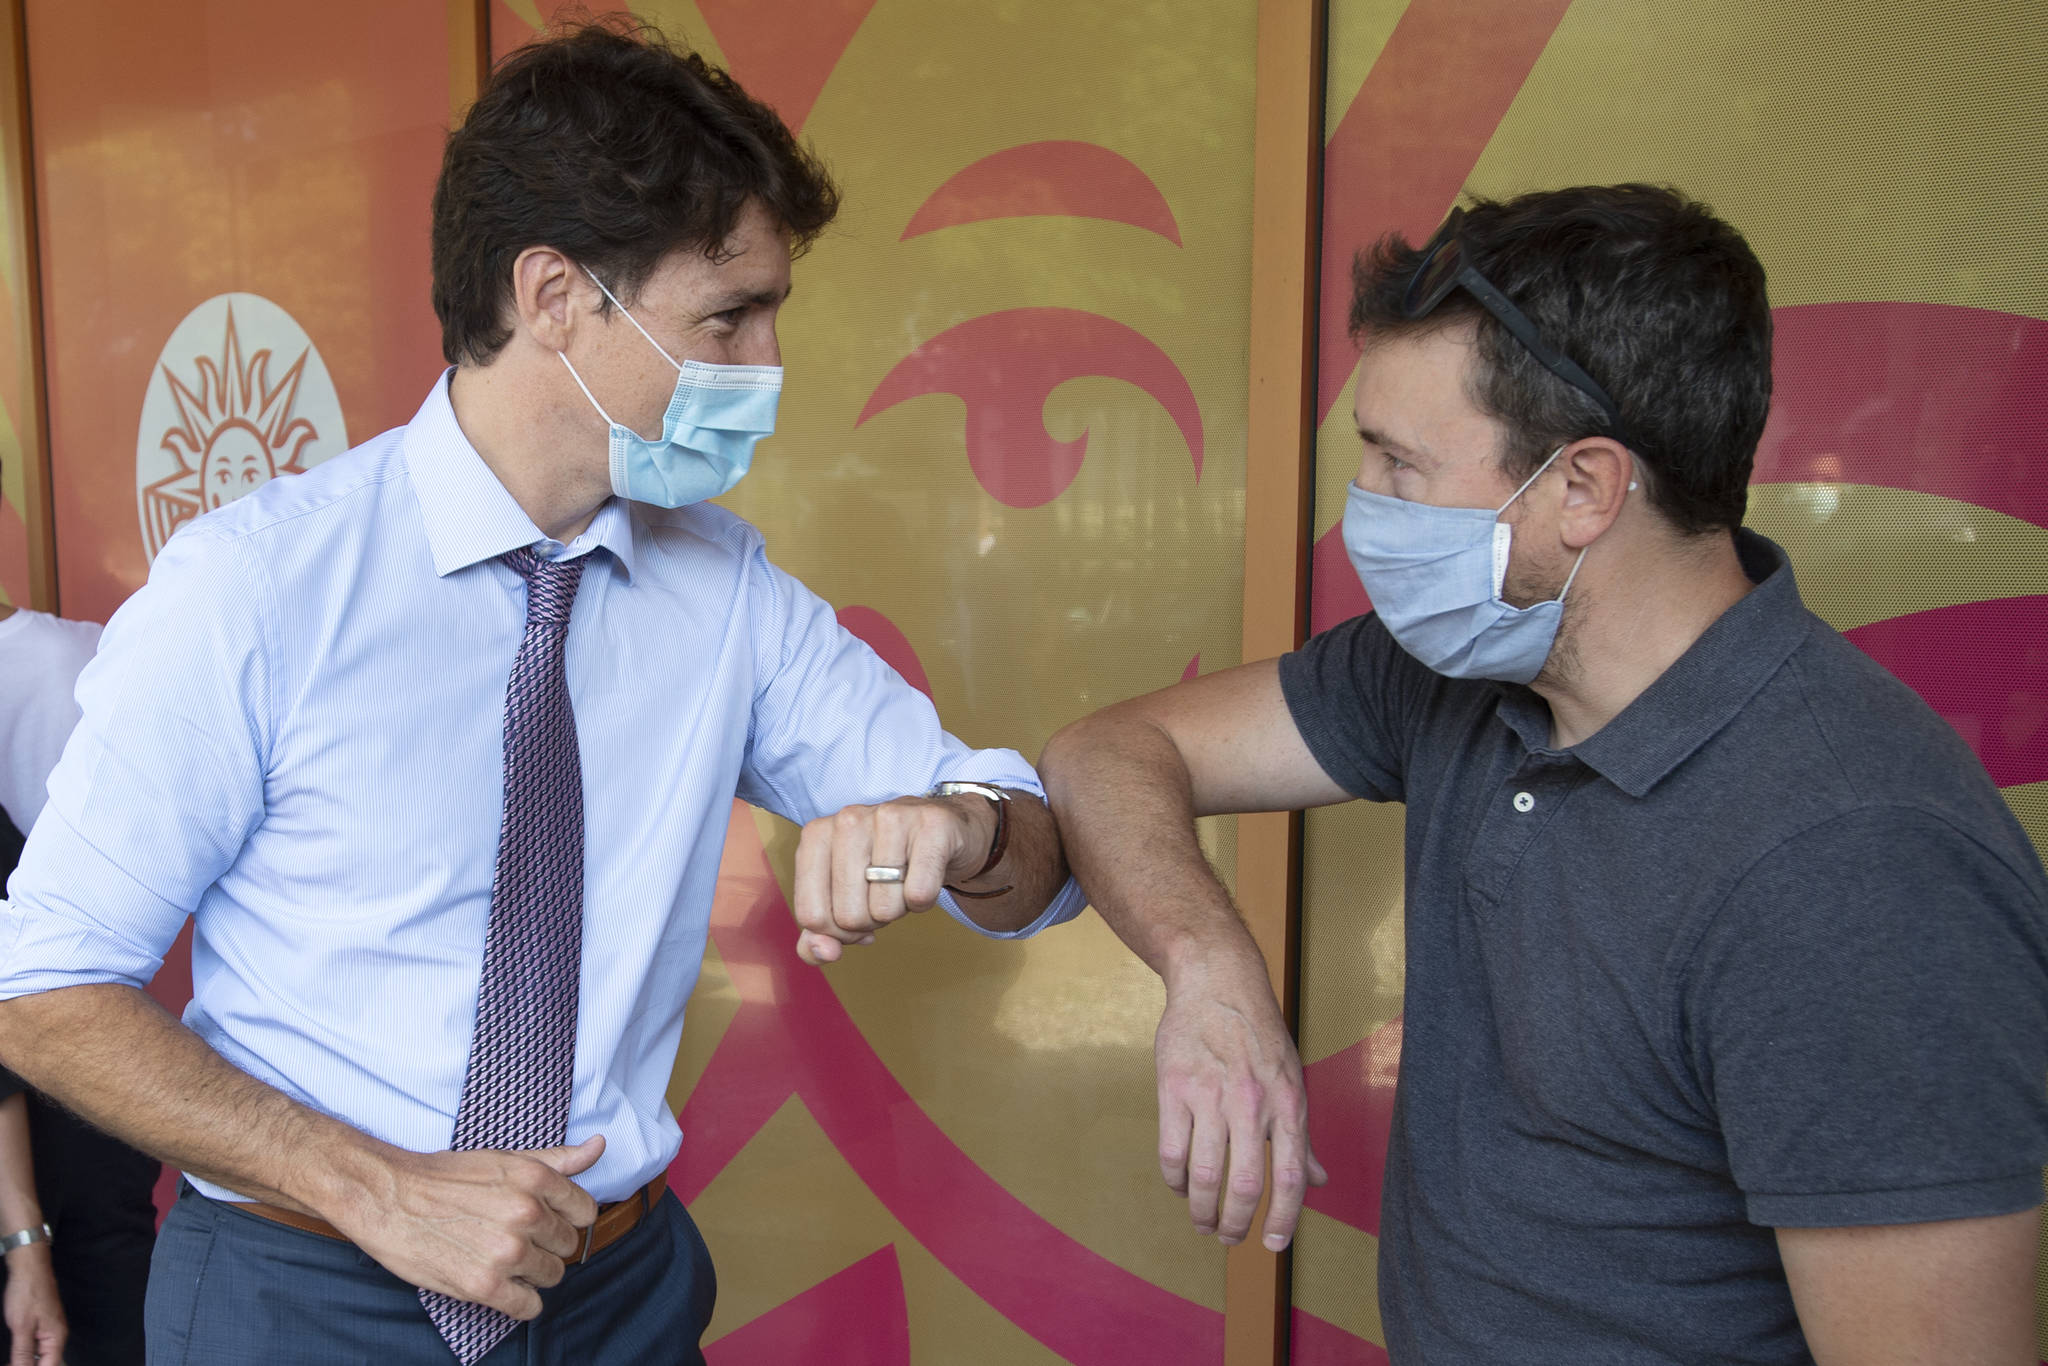 Prime Minister Justin Trudeau greets people waiting for their shots while visiting a COVID-19 vaccination clinic Thursday, July 15, 2021 in Montreal.THE CANADIAN PRESS/Ryan Remiorz